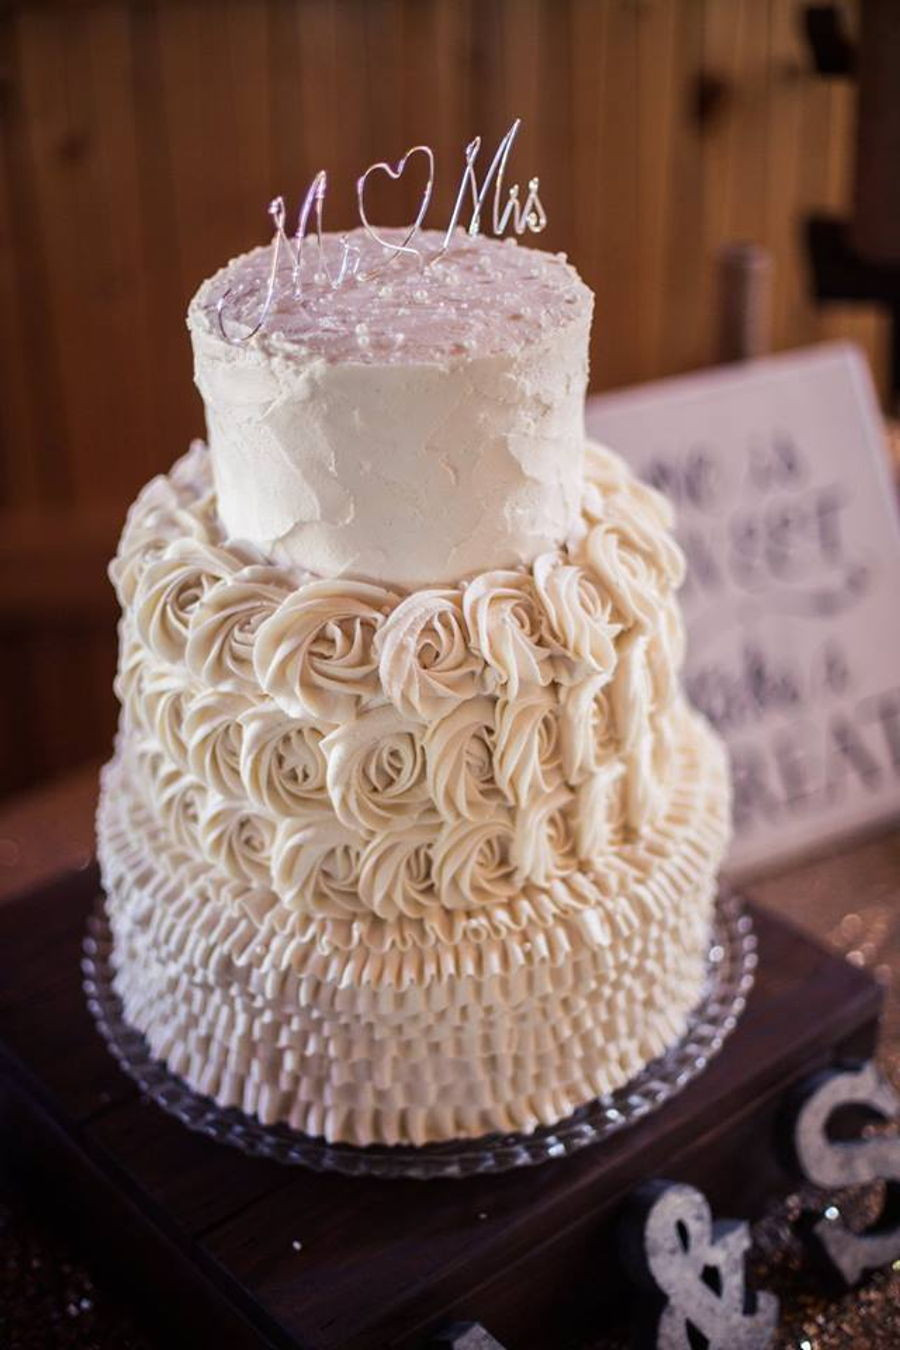 6 Inch Wedding Cakes  Rustic Ruffle And Rosettes Wedding Cake CakeCentral